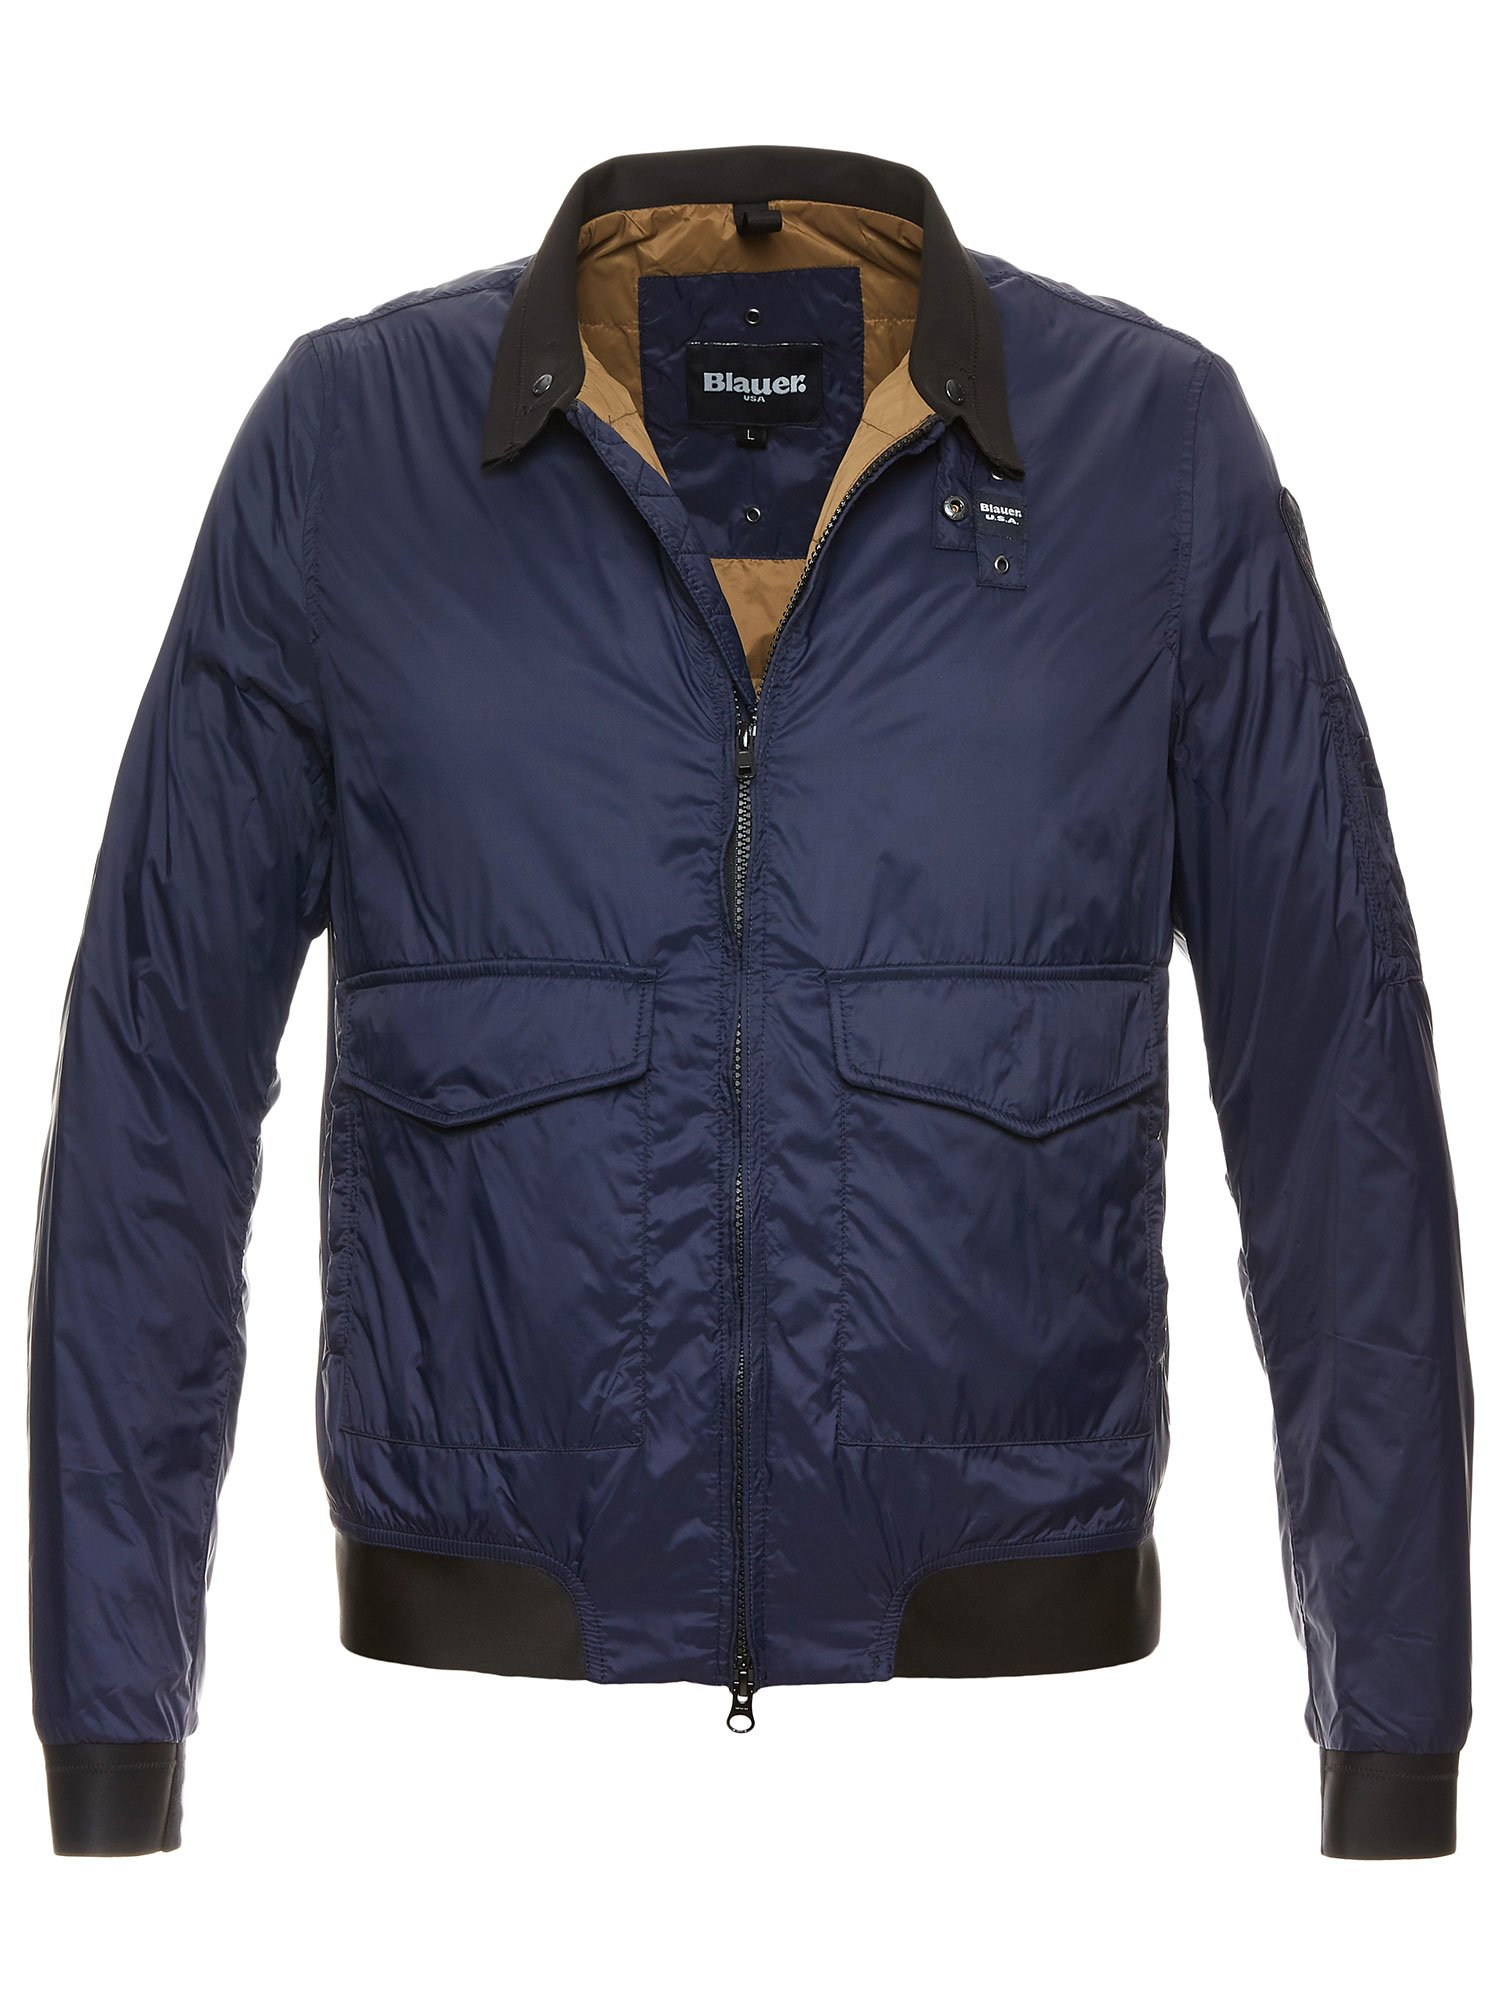 AIDEN PADDED BOMBER JACKET - Blauer